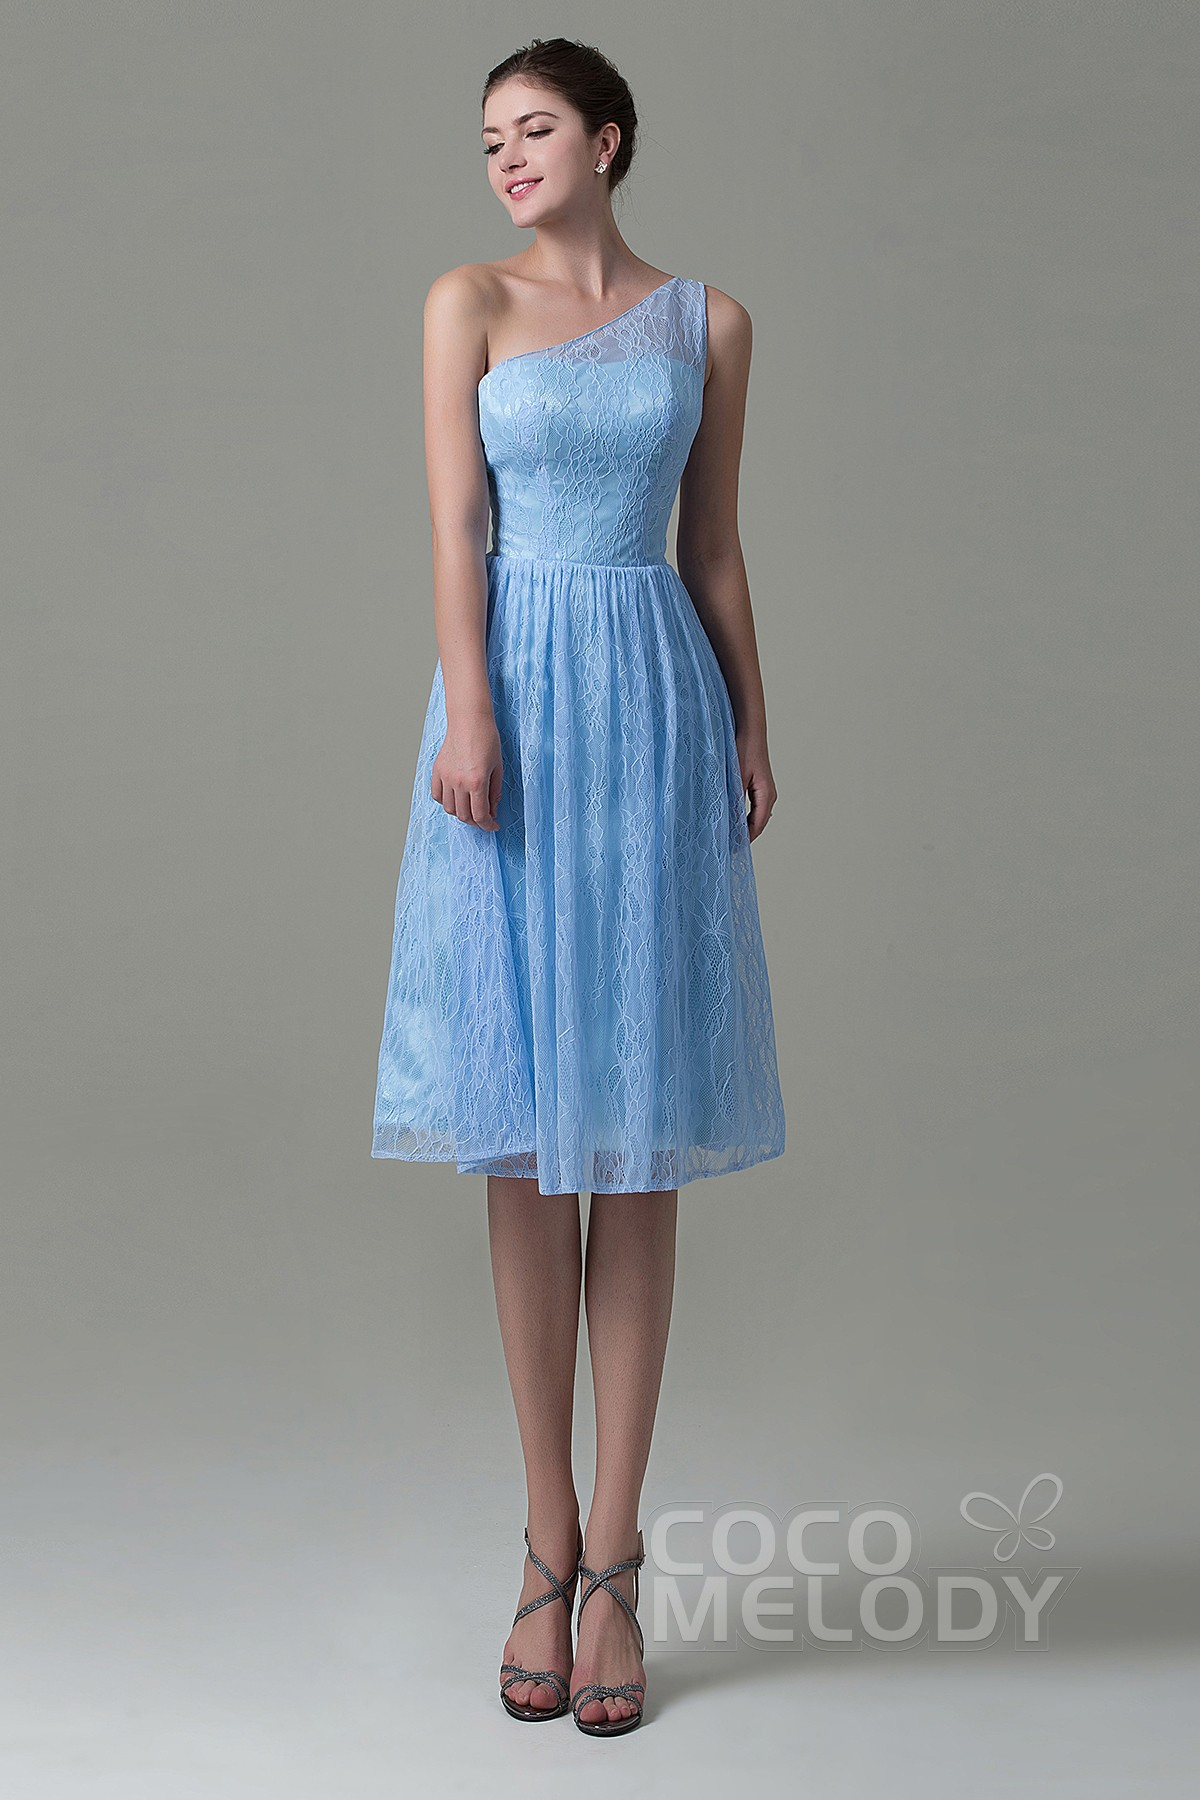 Sears canada bridesmaid dresses fancy one shoulder natural knee length lace sleeveless lace up corset ombrellifo Gallery